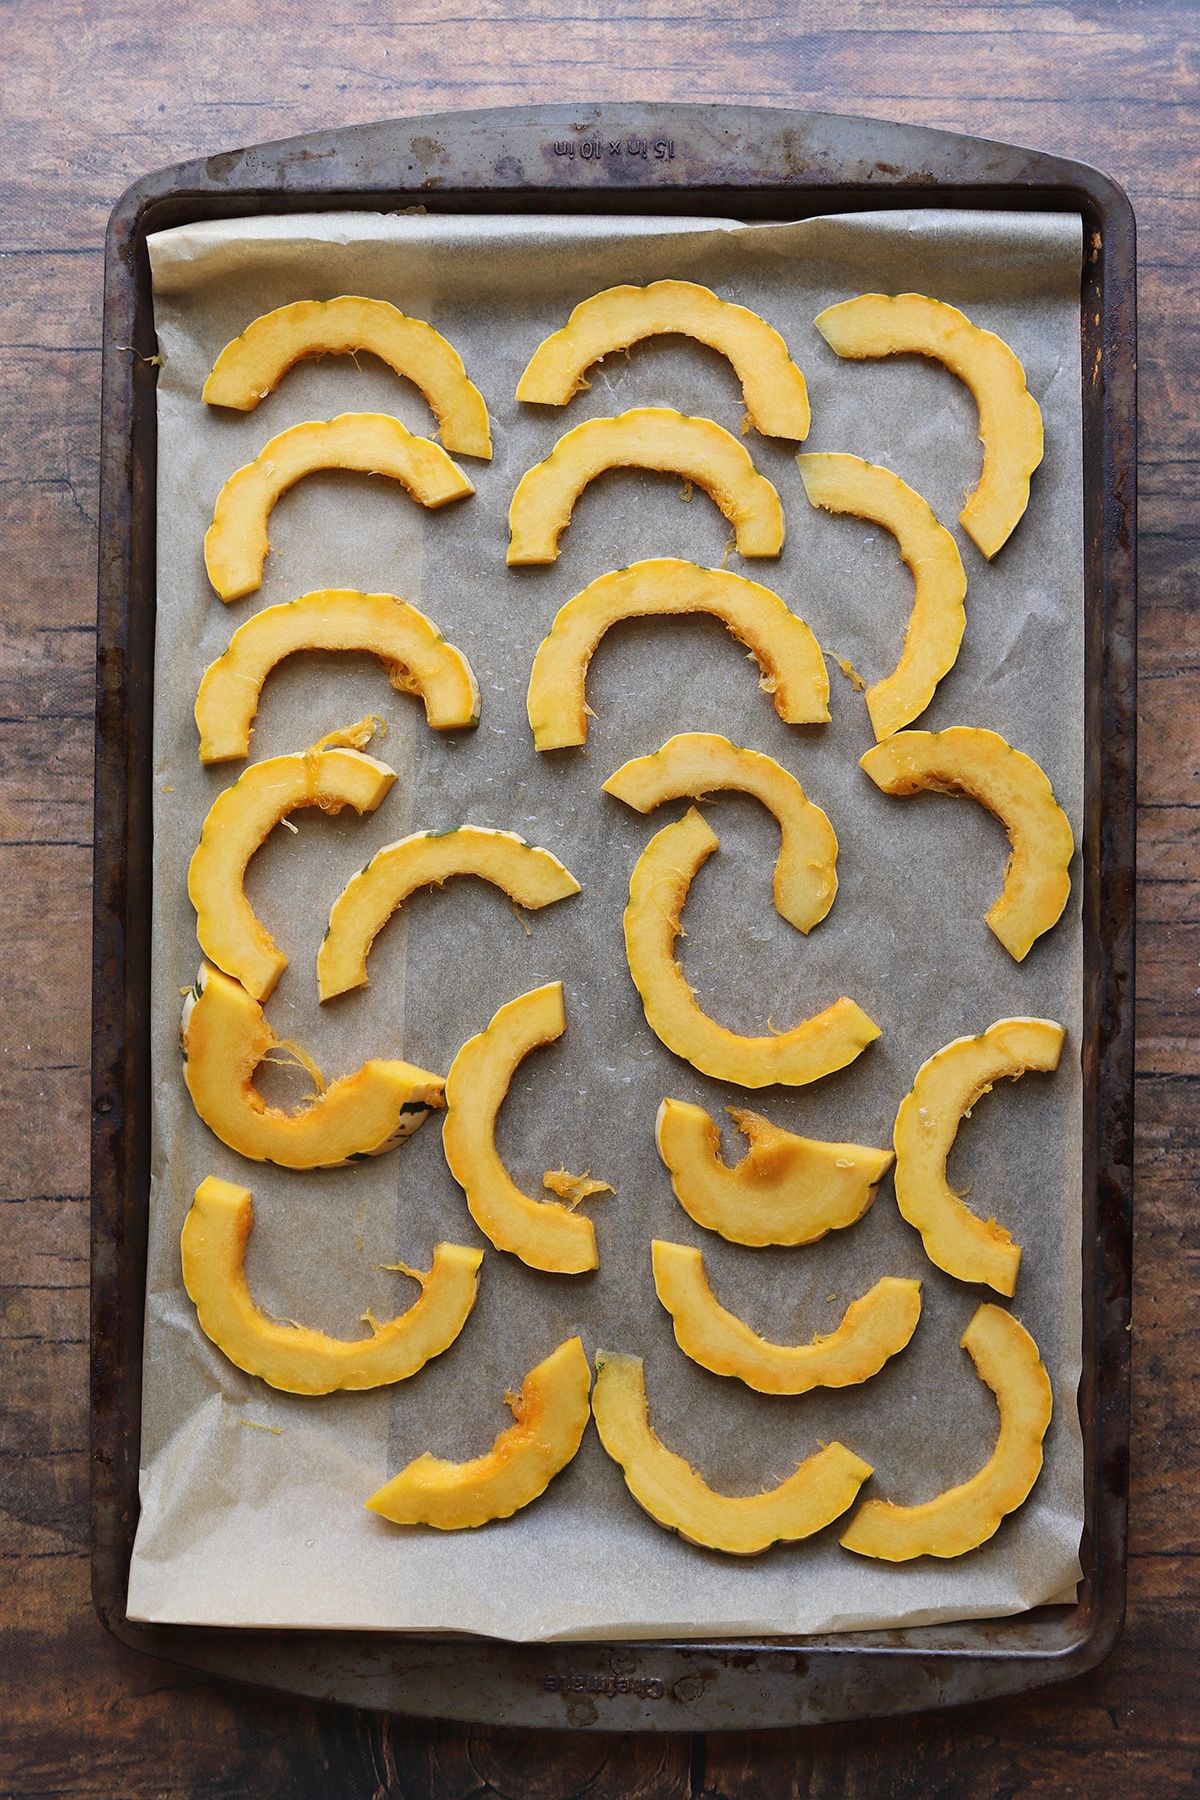 Sliced delicata squash on baking sheet.